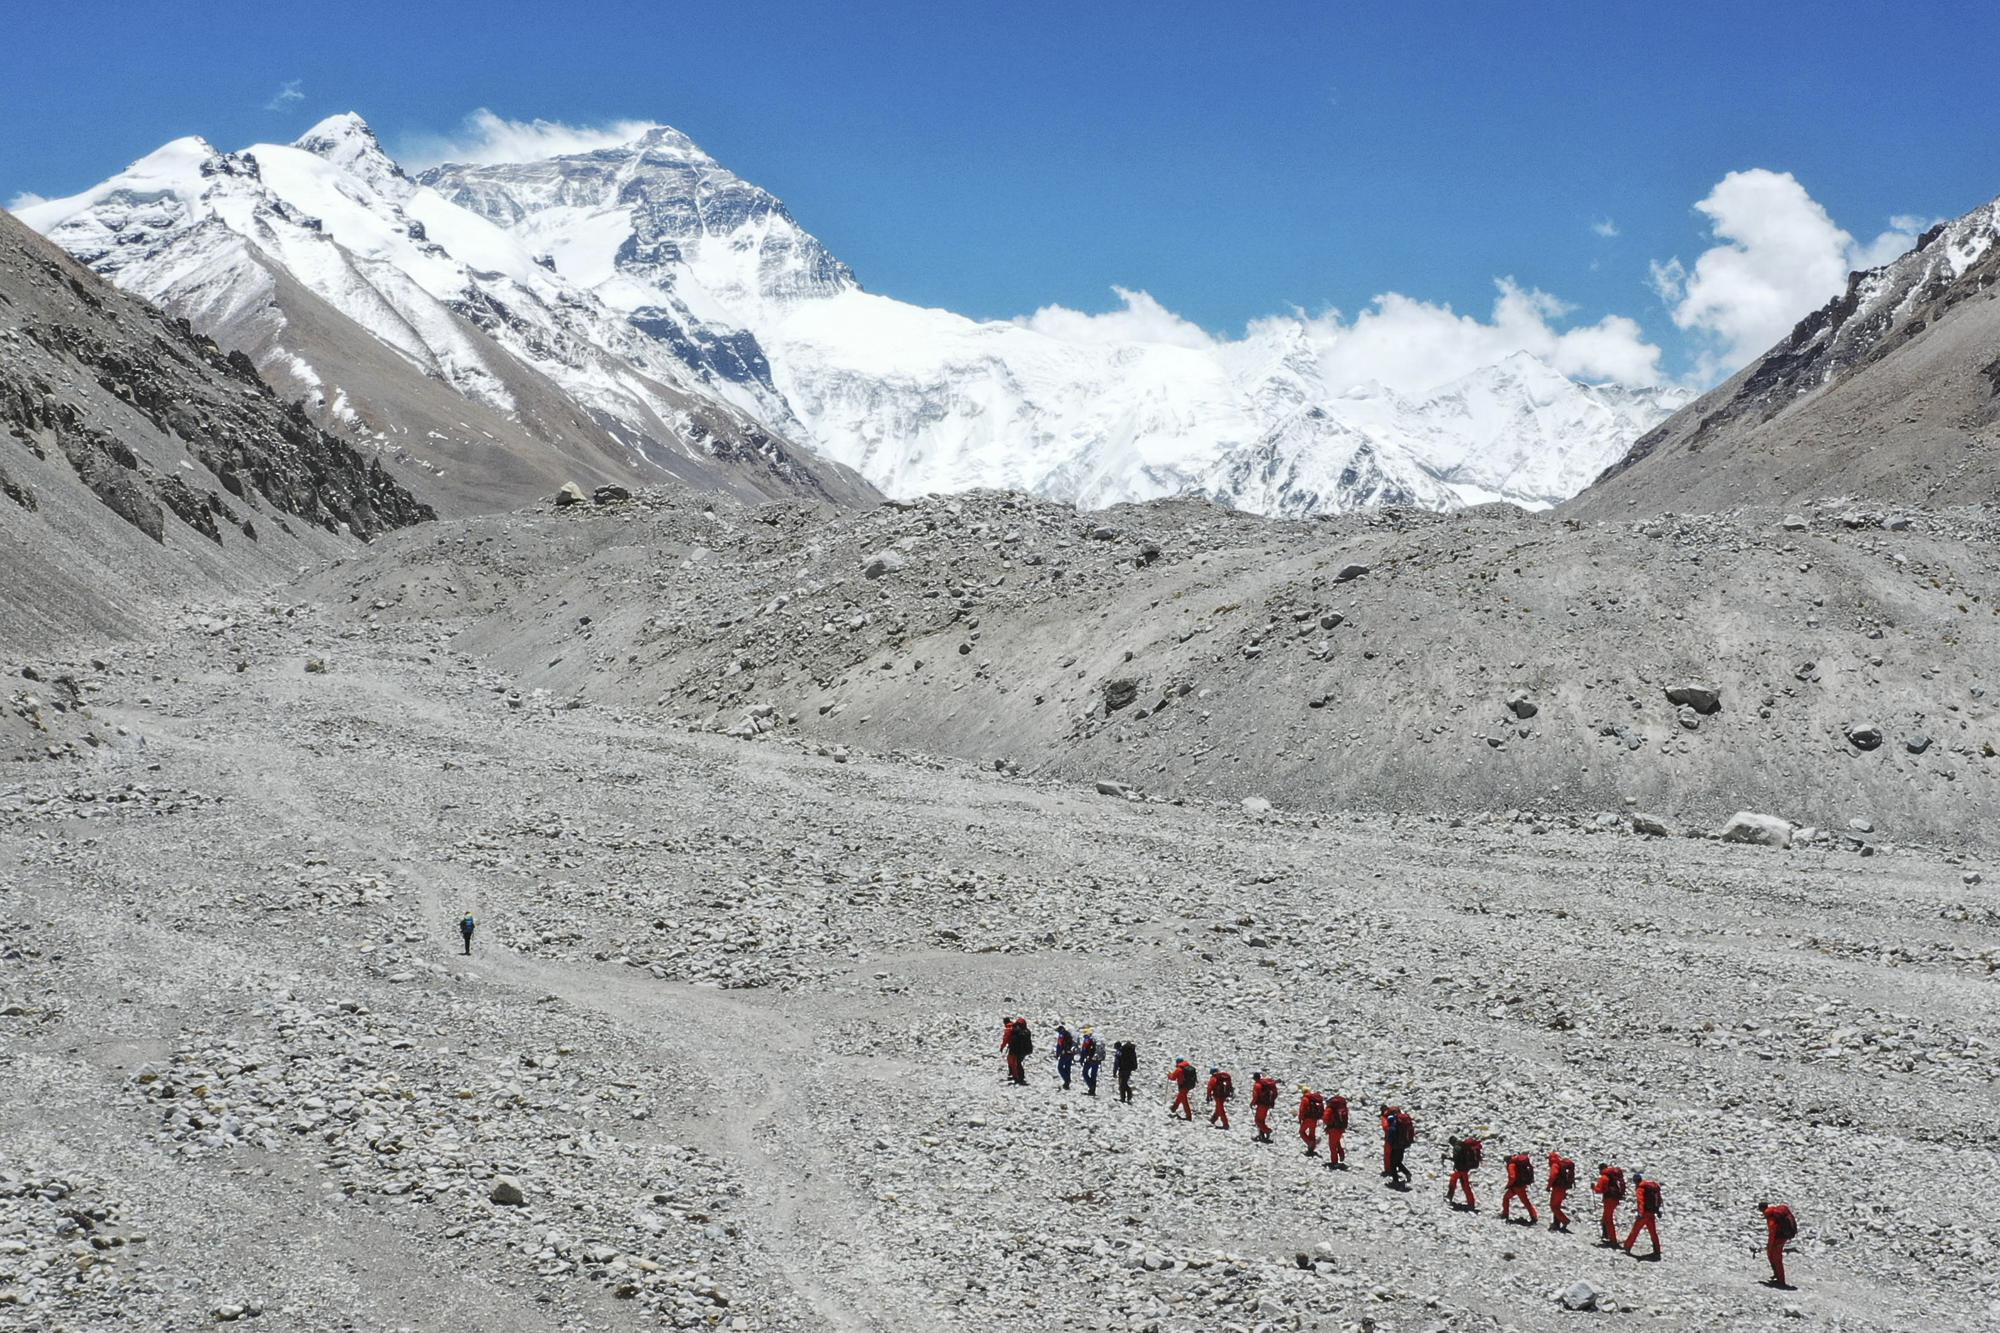 38 Mountaineers Issued Chinese Permits to Climb Mount Everest's Northern Slope